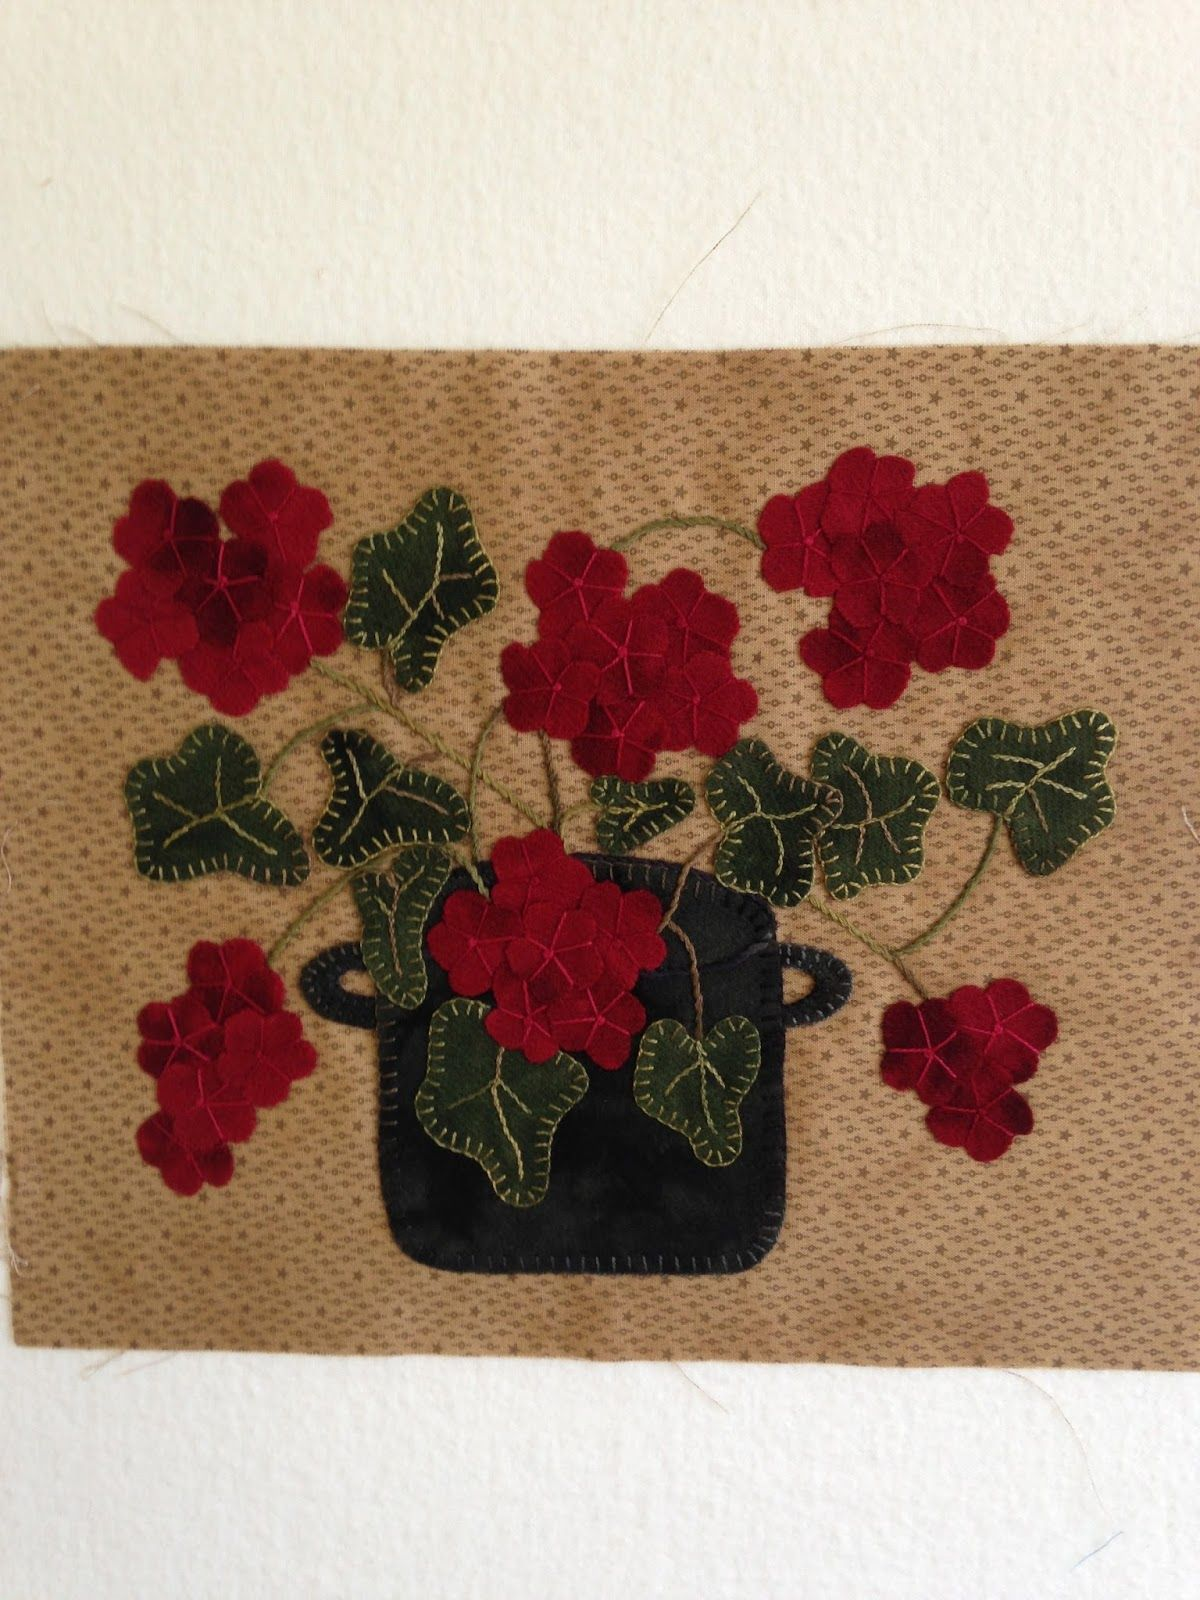 Red Geranium simple embroidery - Google Search